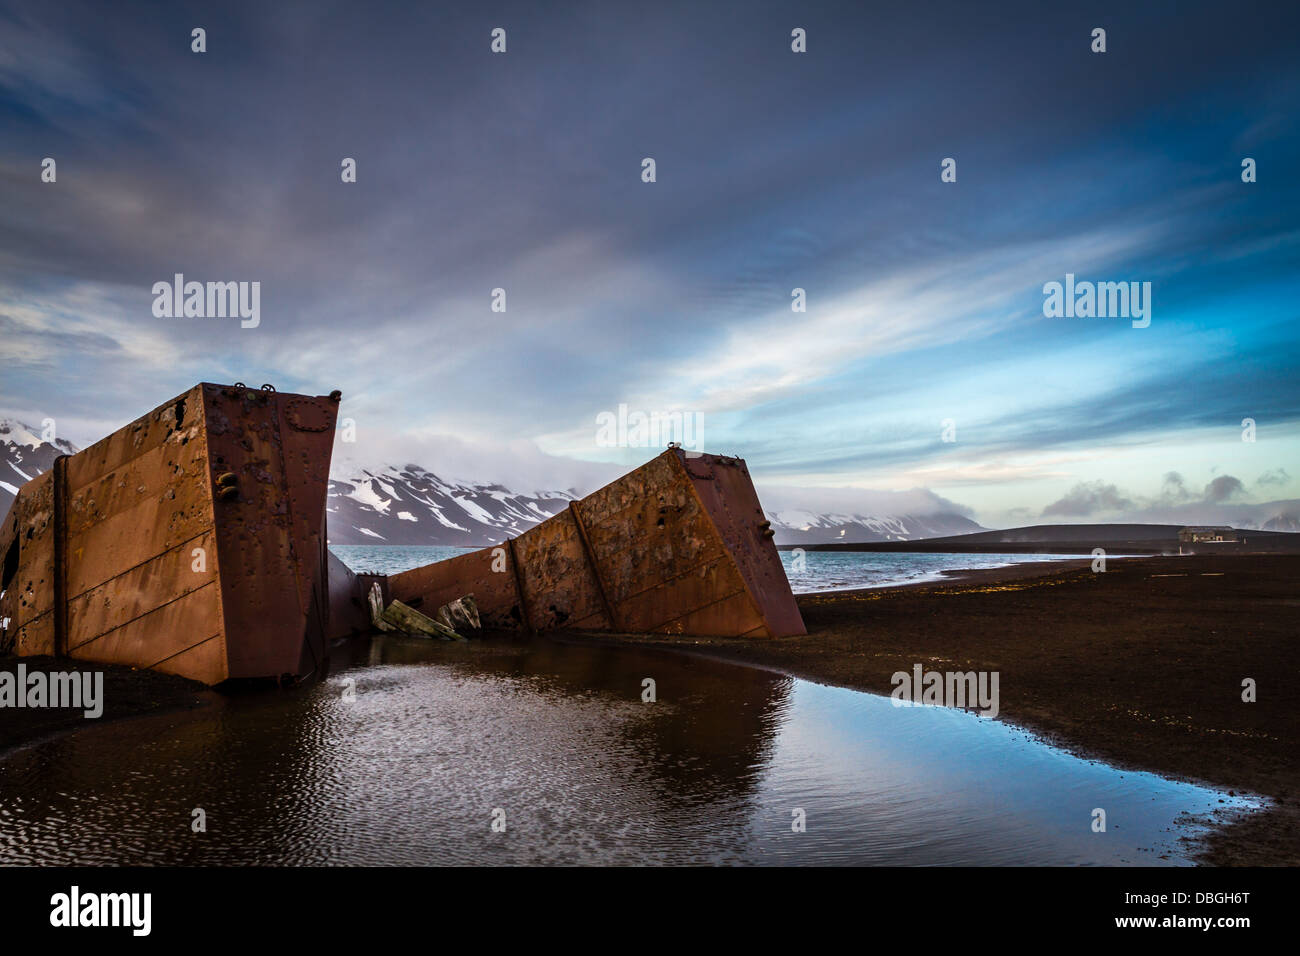 The natural harbour, live volcano and old whaling station of Deception Island, Antarctica  (subantarctic) - Stock Image